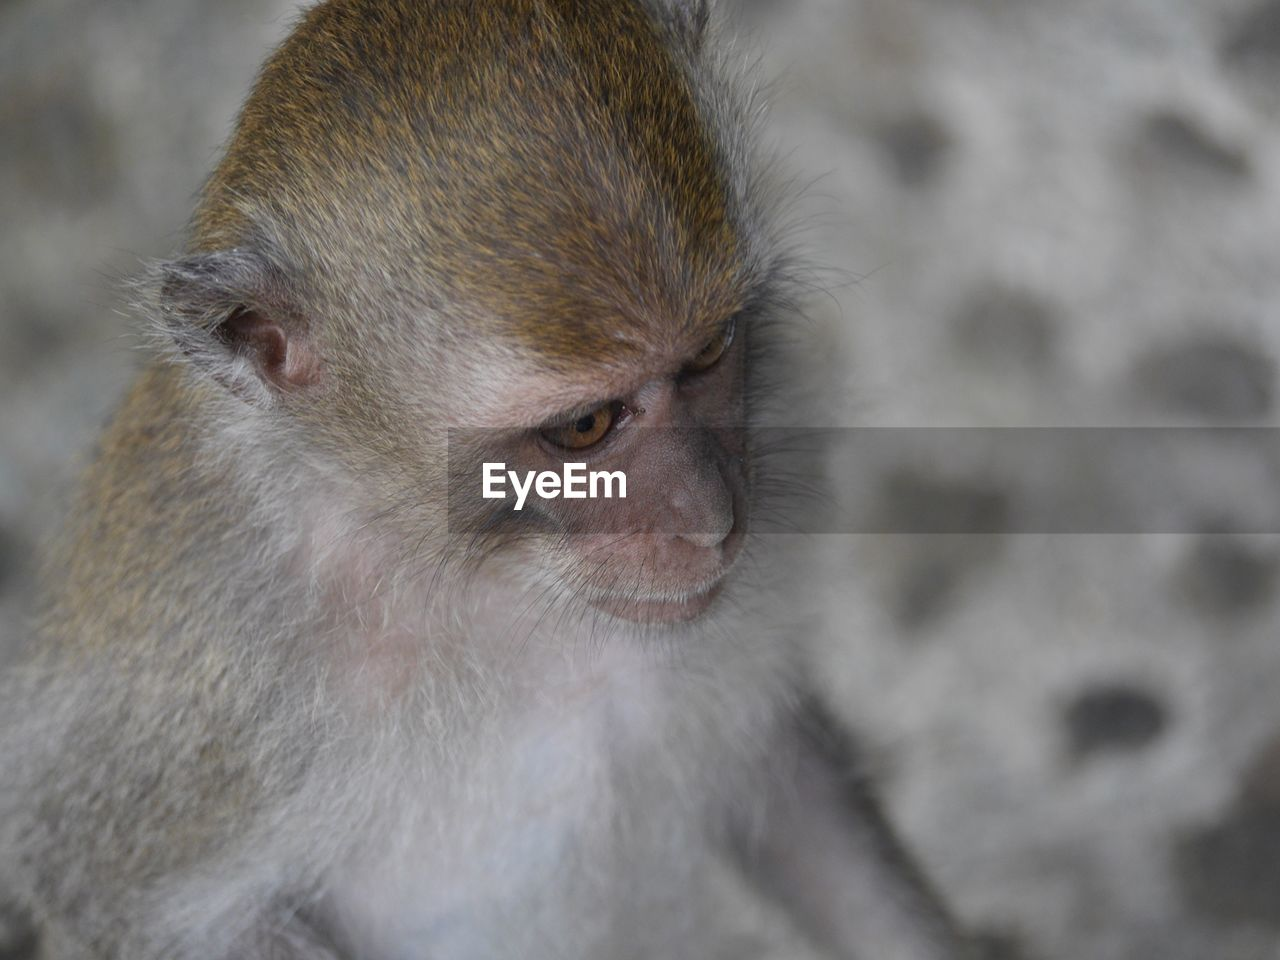 animal themes, animal, monkey, primate, animal wildlife, mammal, one animal, animals in the wild, vertebrate, focus on foreground, looking away, no people, looking, close-up, animal hair, day, outdoors, animal head, care, baboon